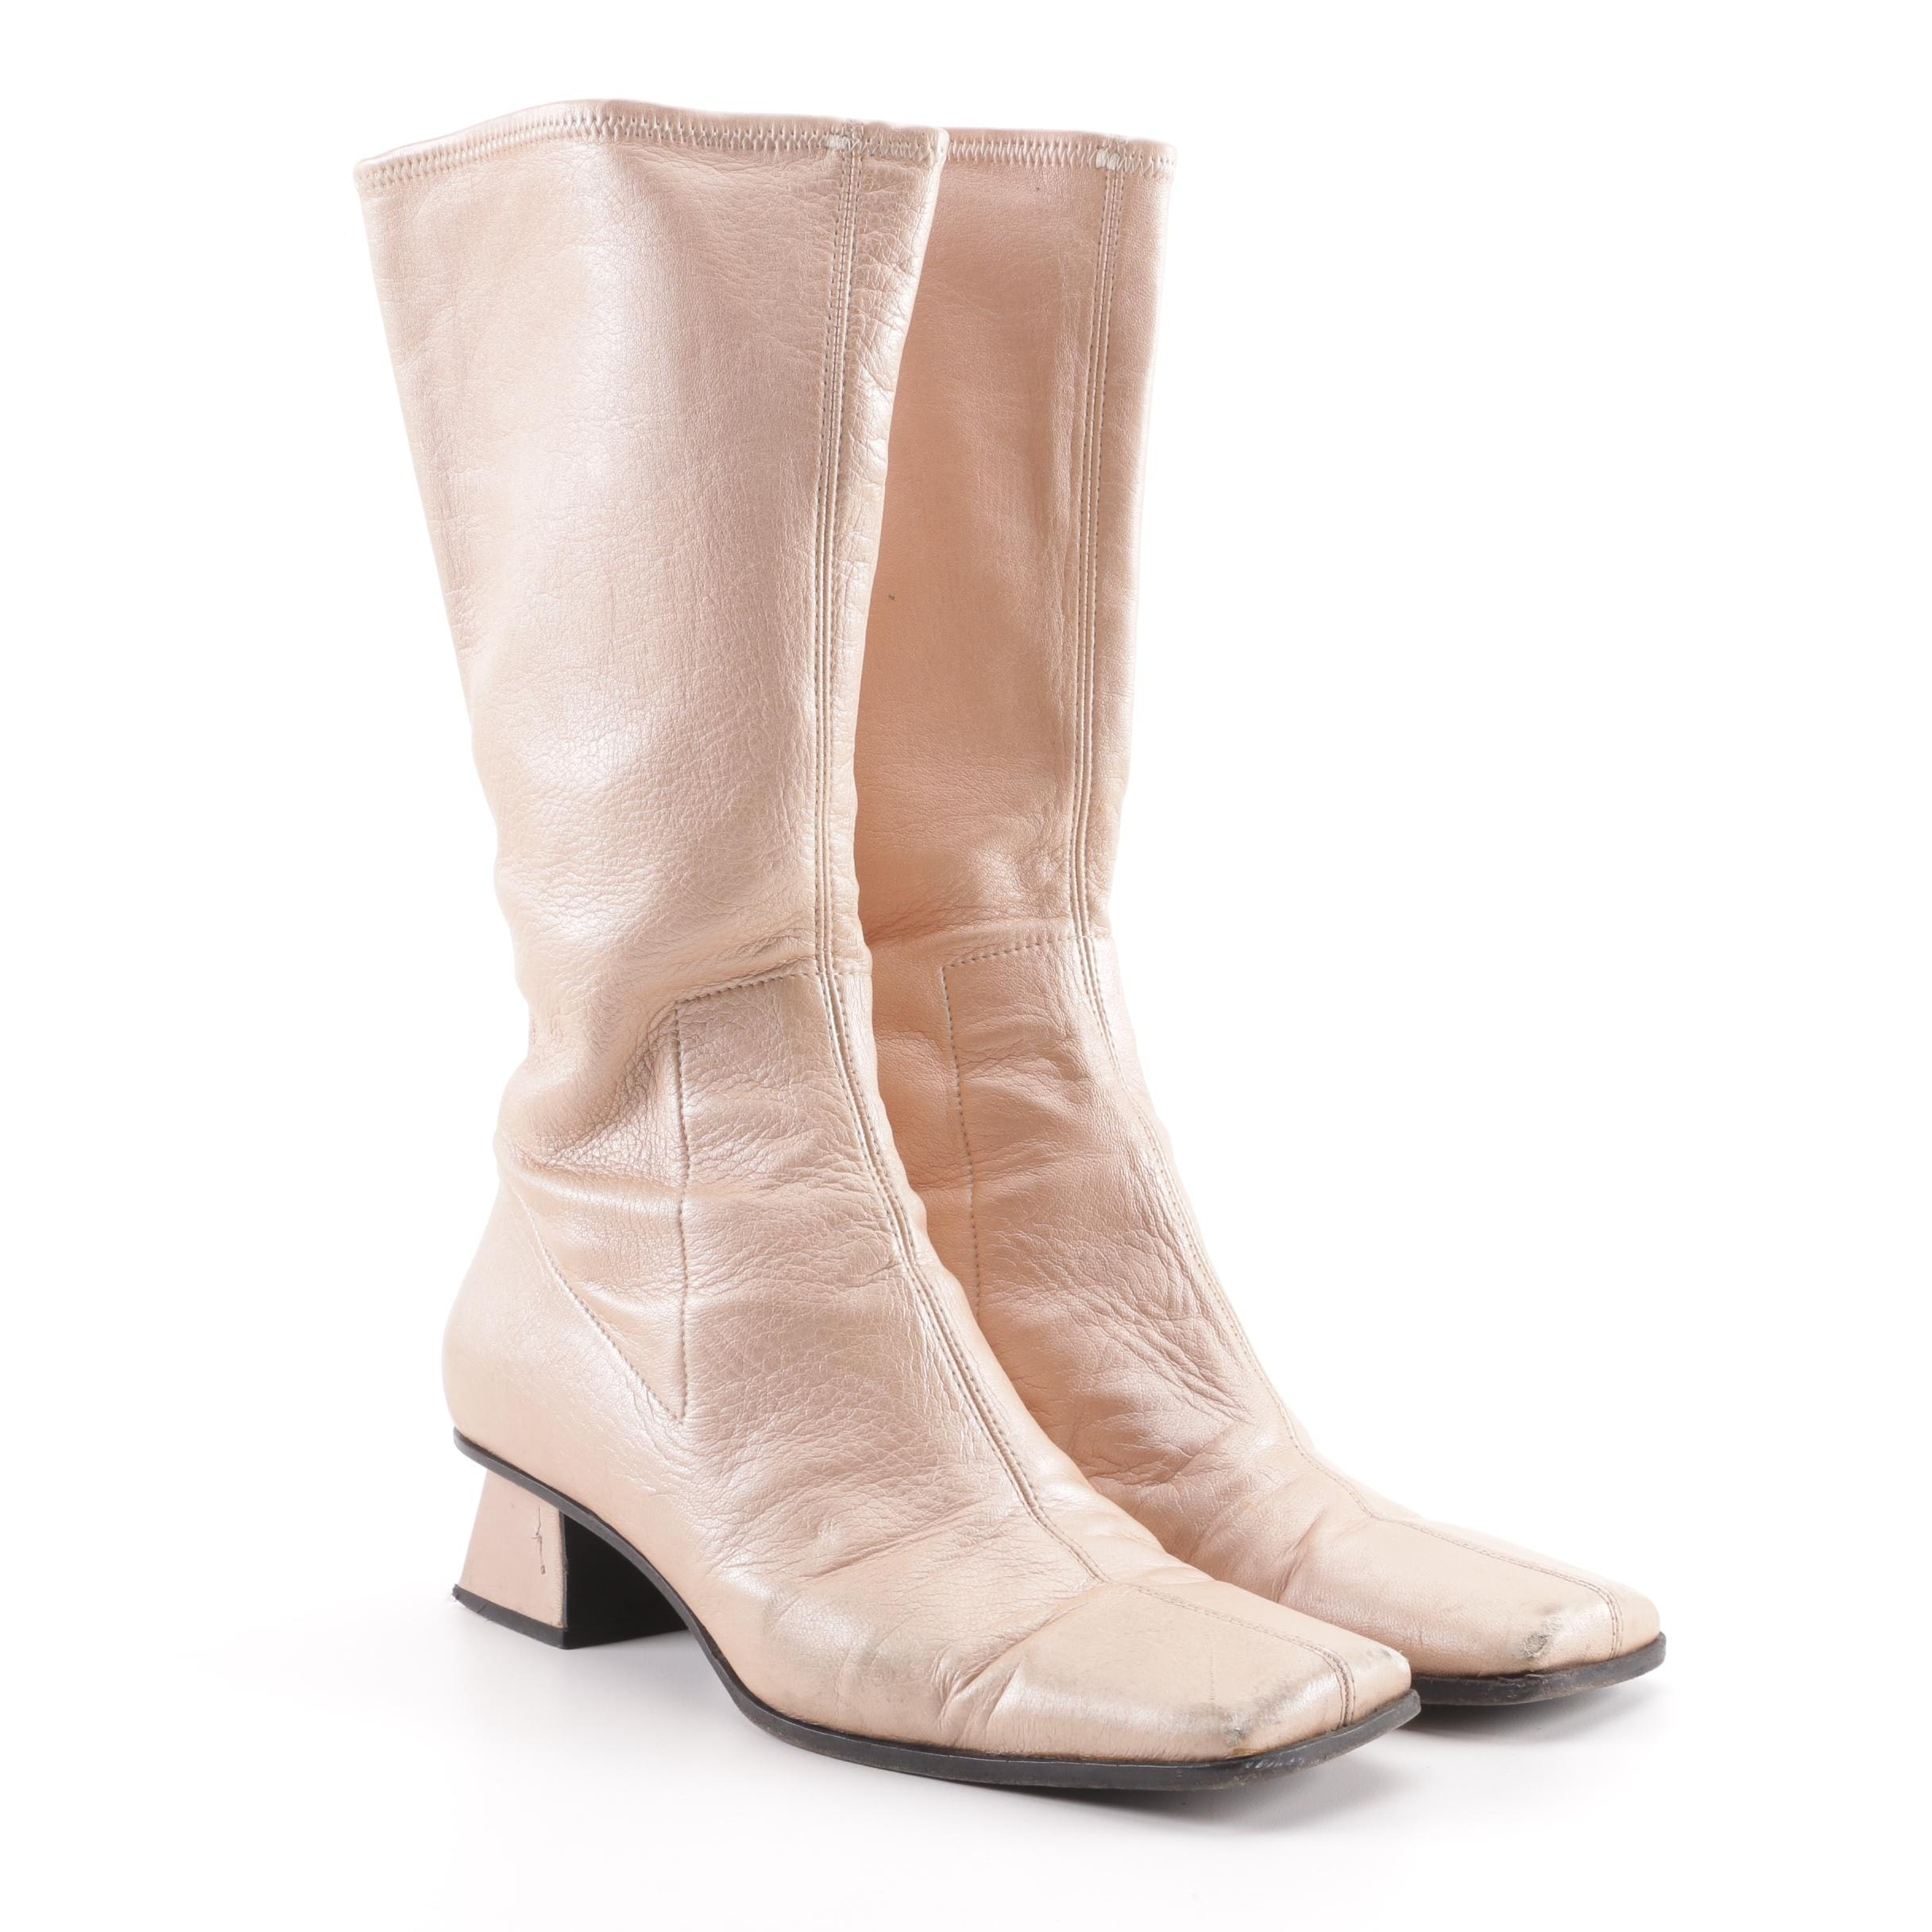 Miu Miu Rose Gold Leather Calf High Boots, Made in Italy